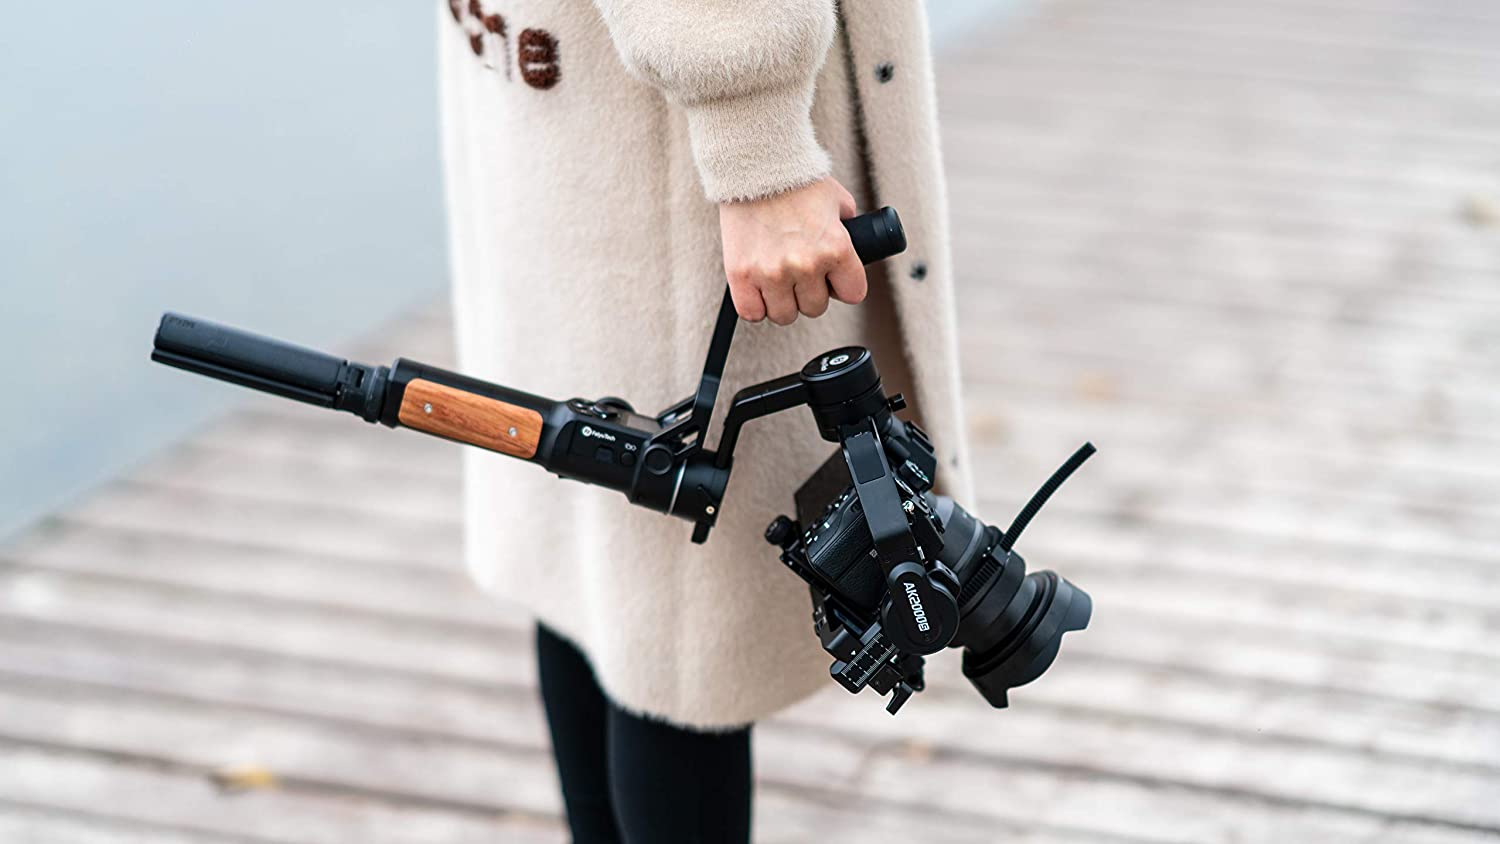 FeiyuTech AK2000S 3-Axis Handheld Gimbal Stabilizer for Mirrorless and DSLR Sony Canon Panasonic Nikon Fuji Cameras with Microphone /& Tripod MAX Payload Updates to 2.2kg//4.85 LB